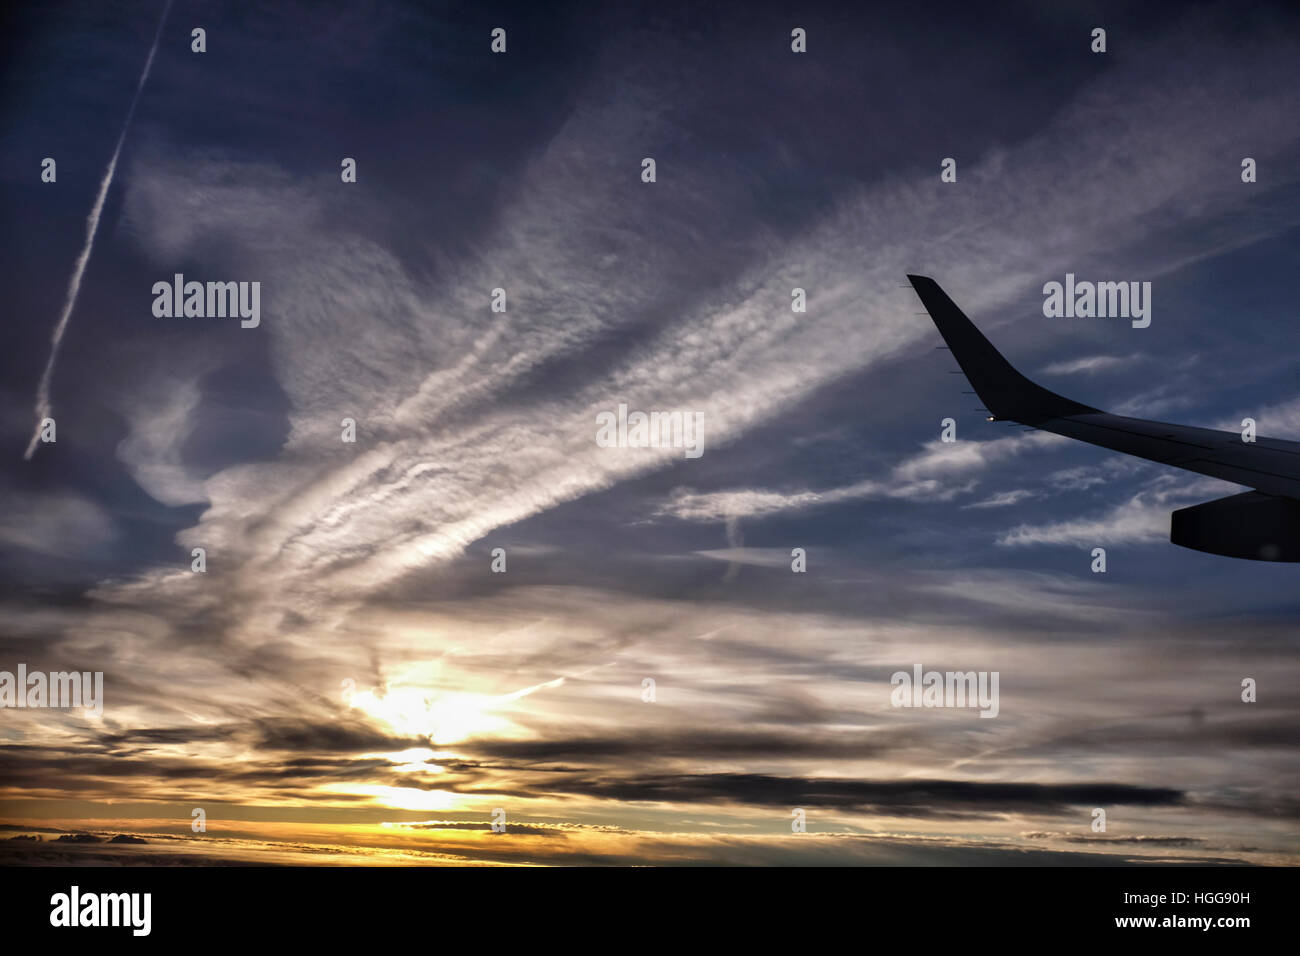 Sunrise, sun rising, golden sky, dawn, view from plane, airplane - Stock Image